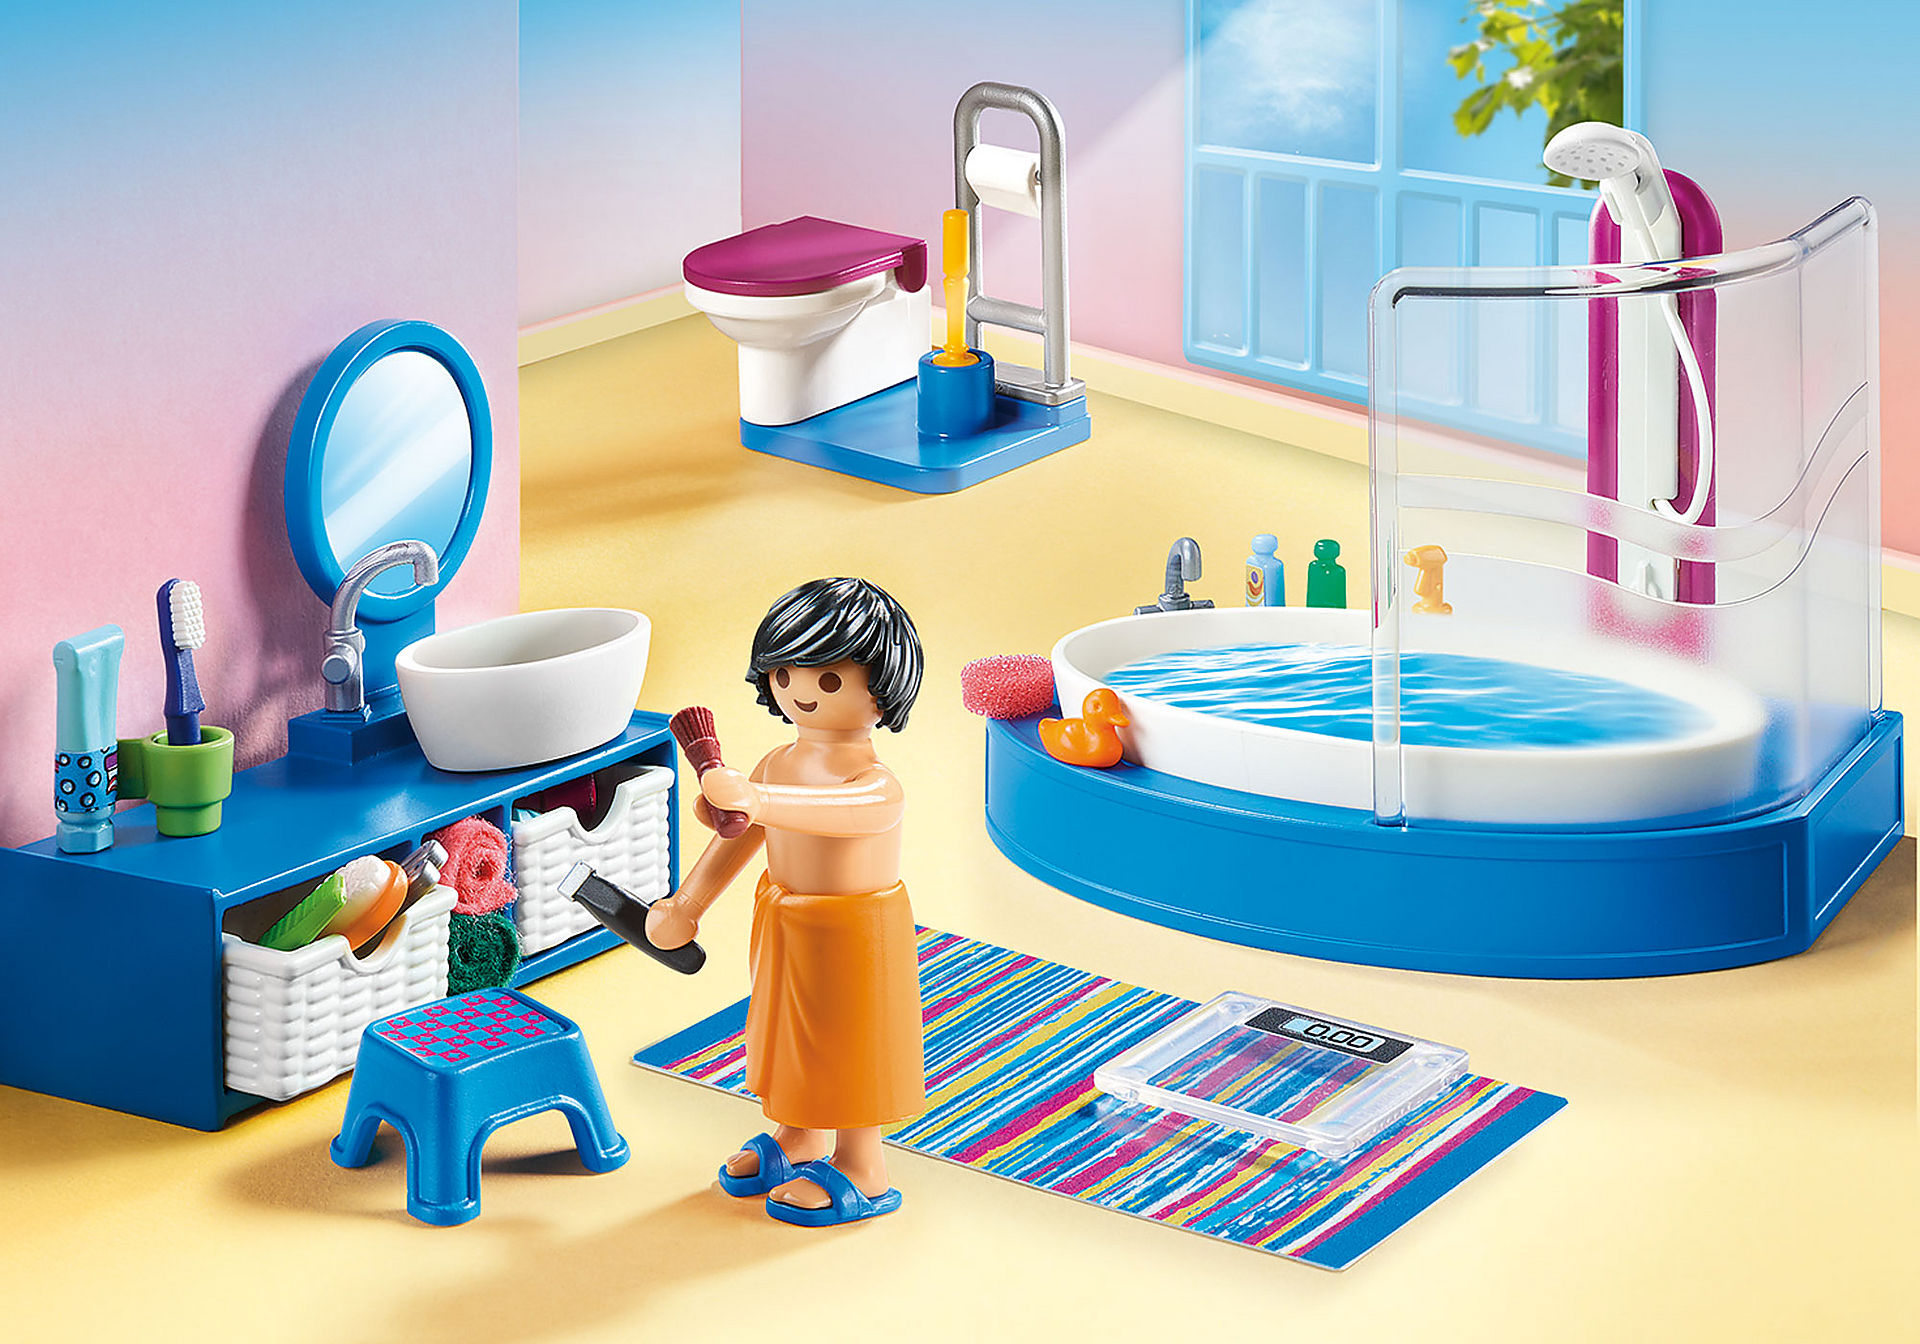 http://media.playmobil.com/i/playmobil/70211_product_detail/Bathroom with Tub